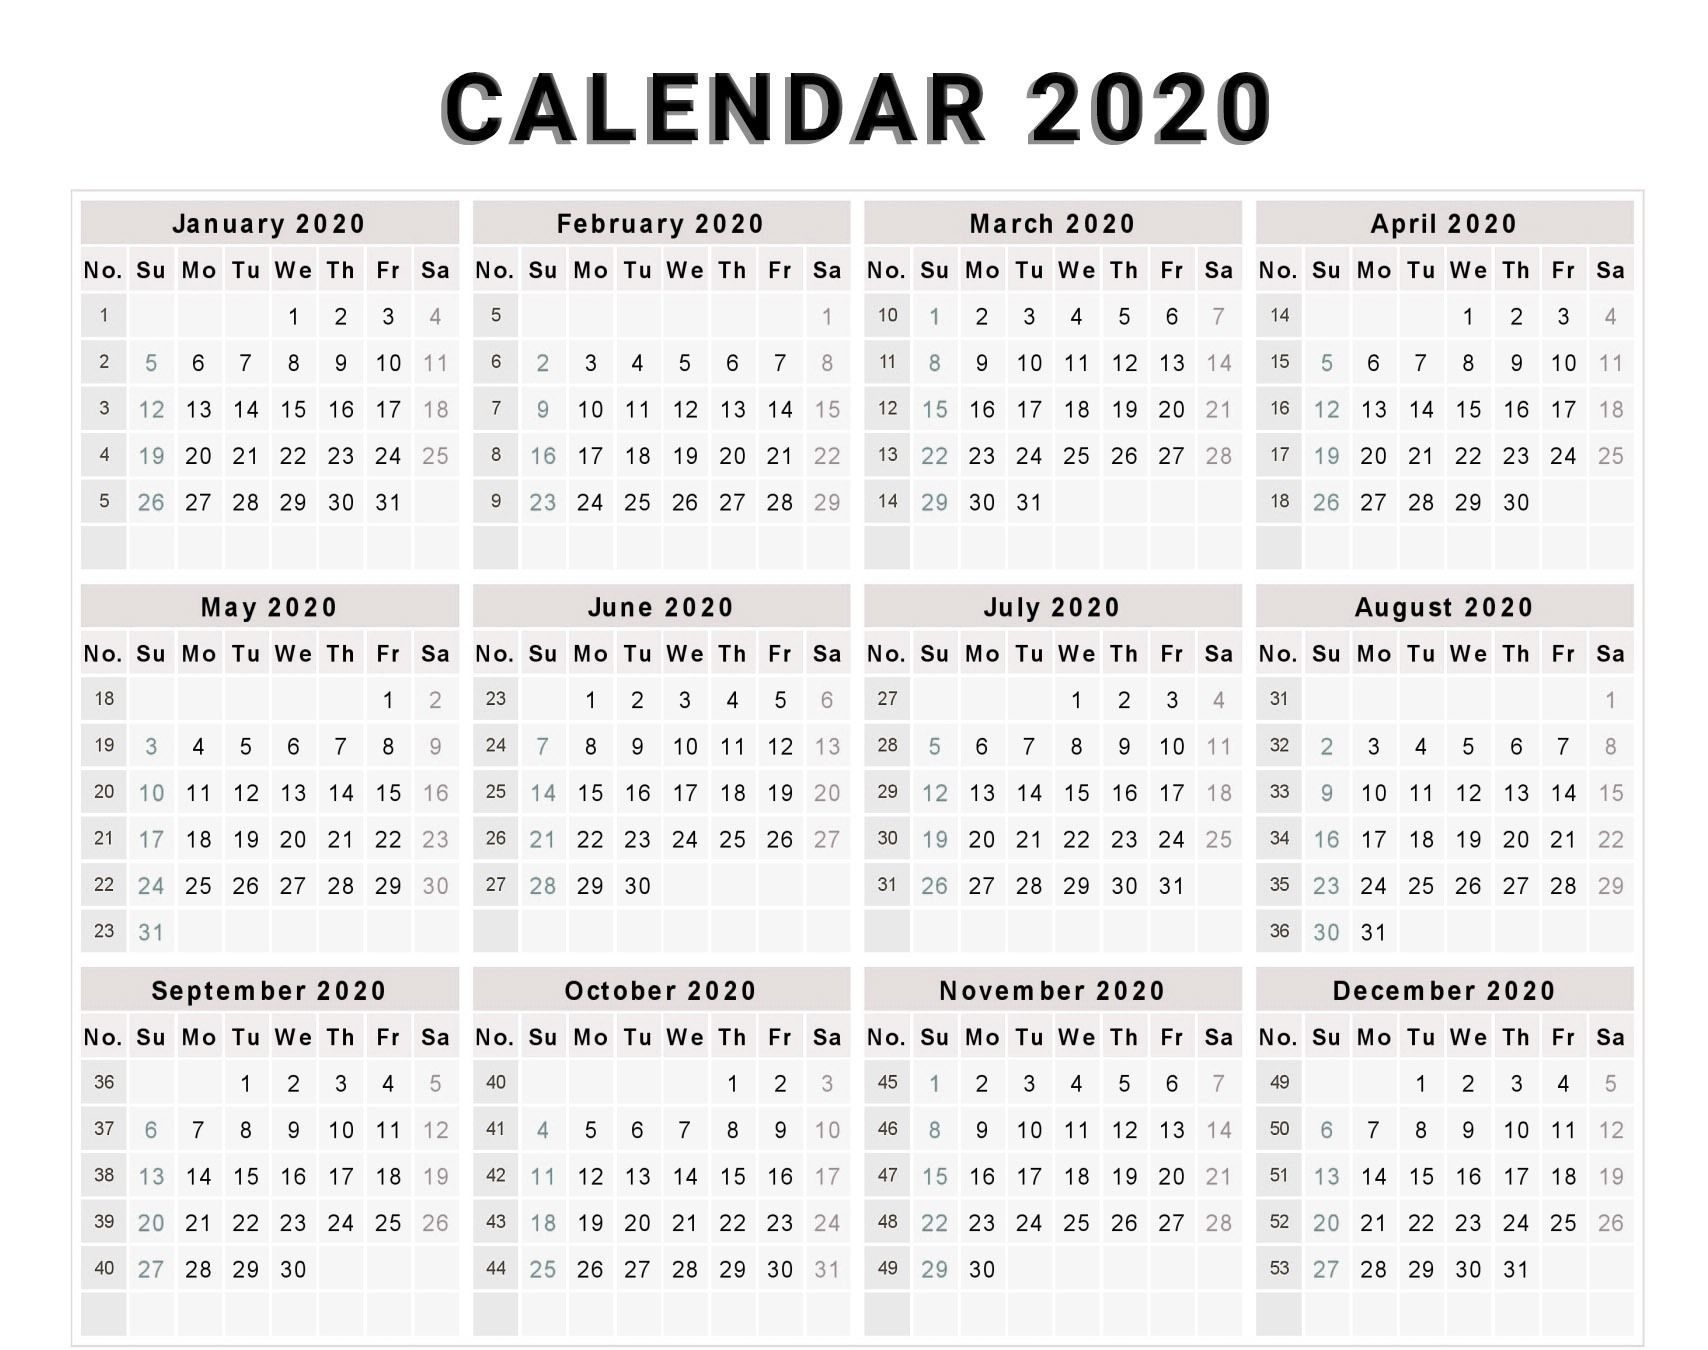 Free Editable 2020 Calendar Printable Template (With Images